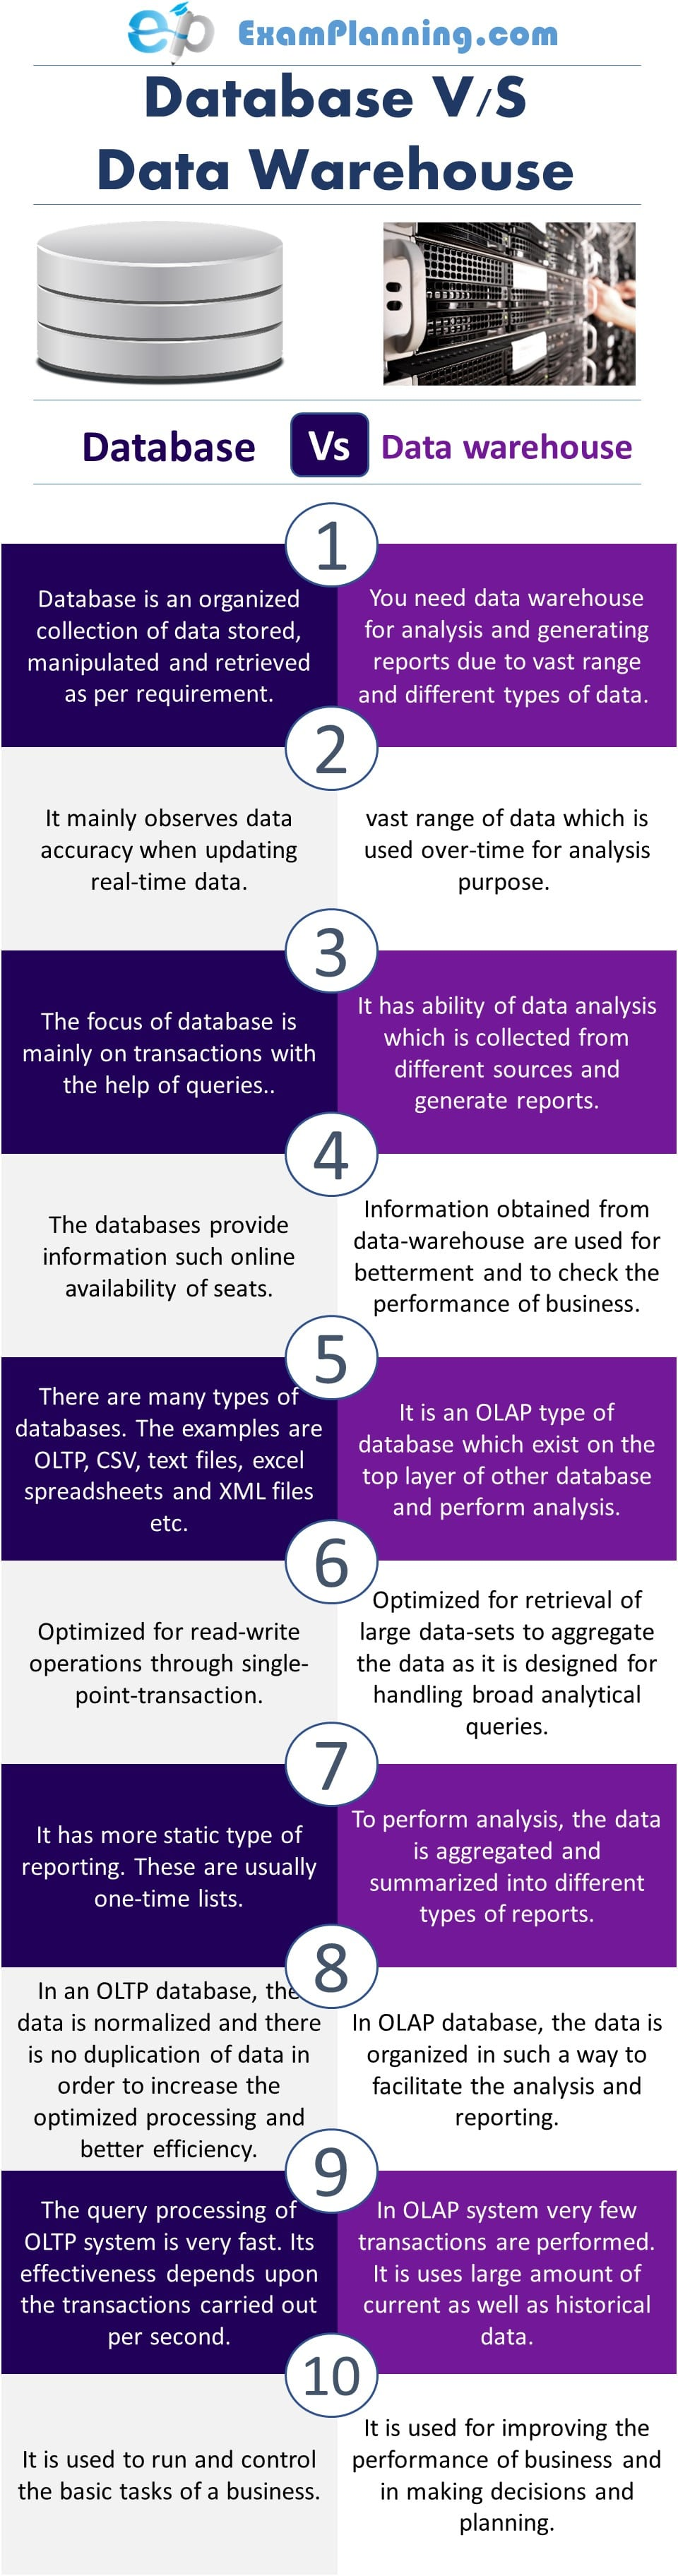 Database vs Data Warehouse (Difference and Similarities)